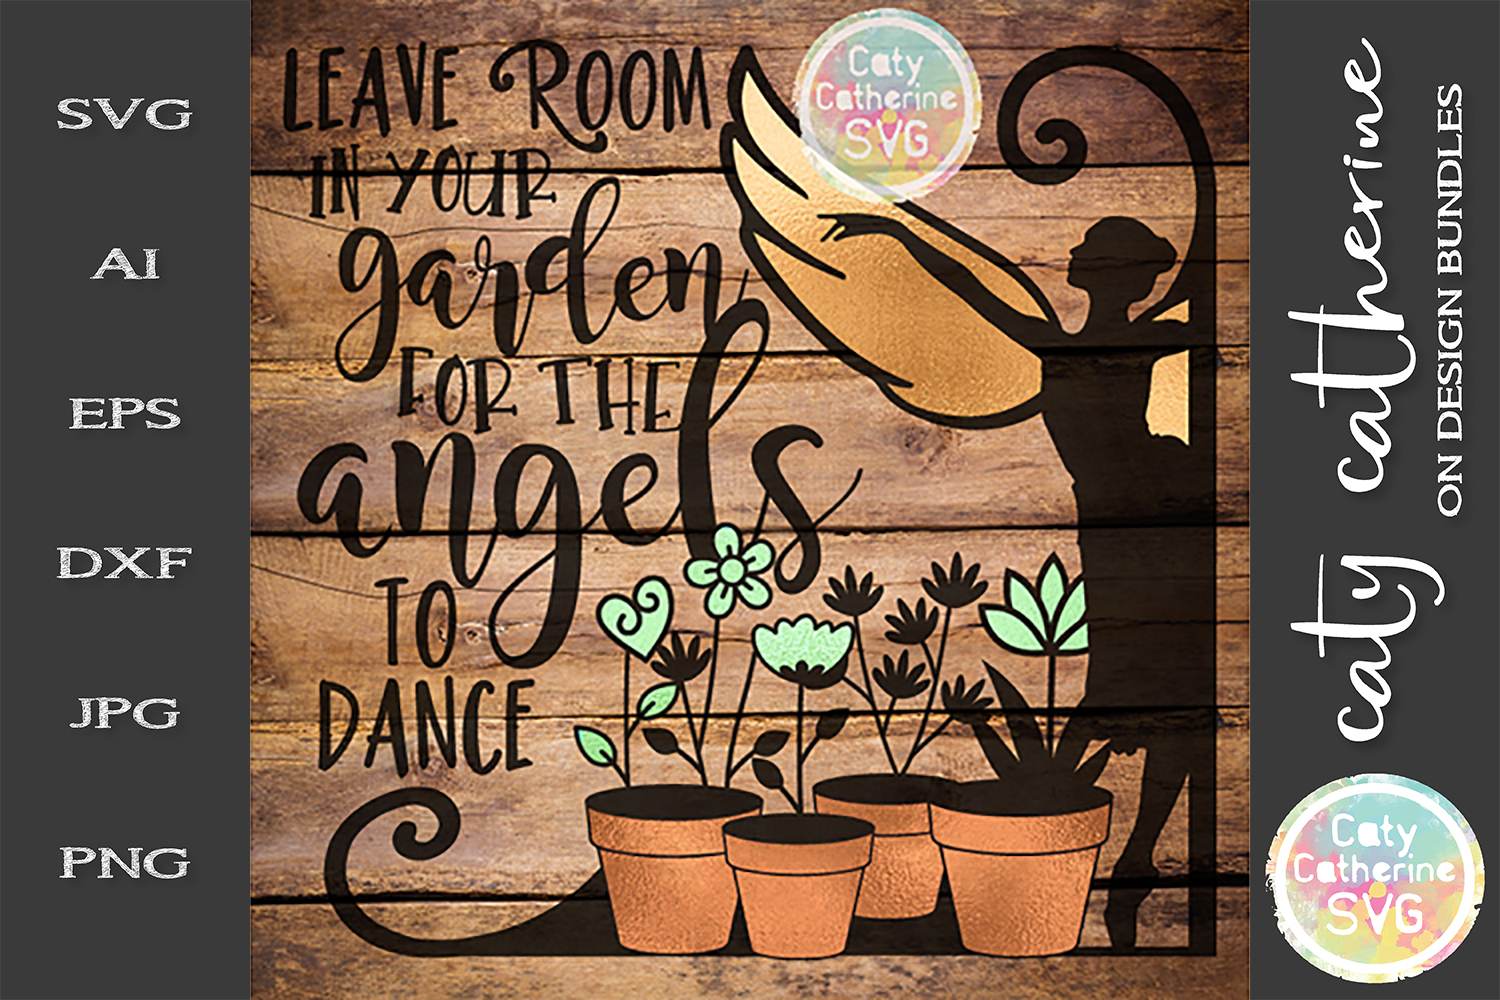 Leave Room In Your Garden For the Angels To Dance SVG example image 1